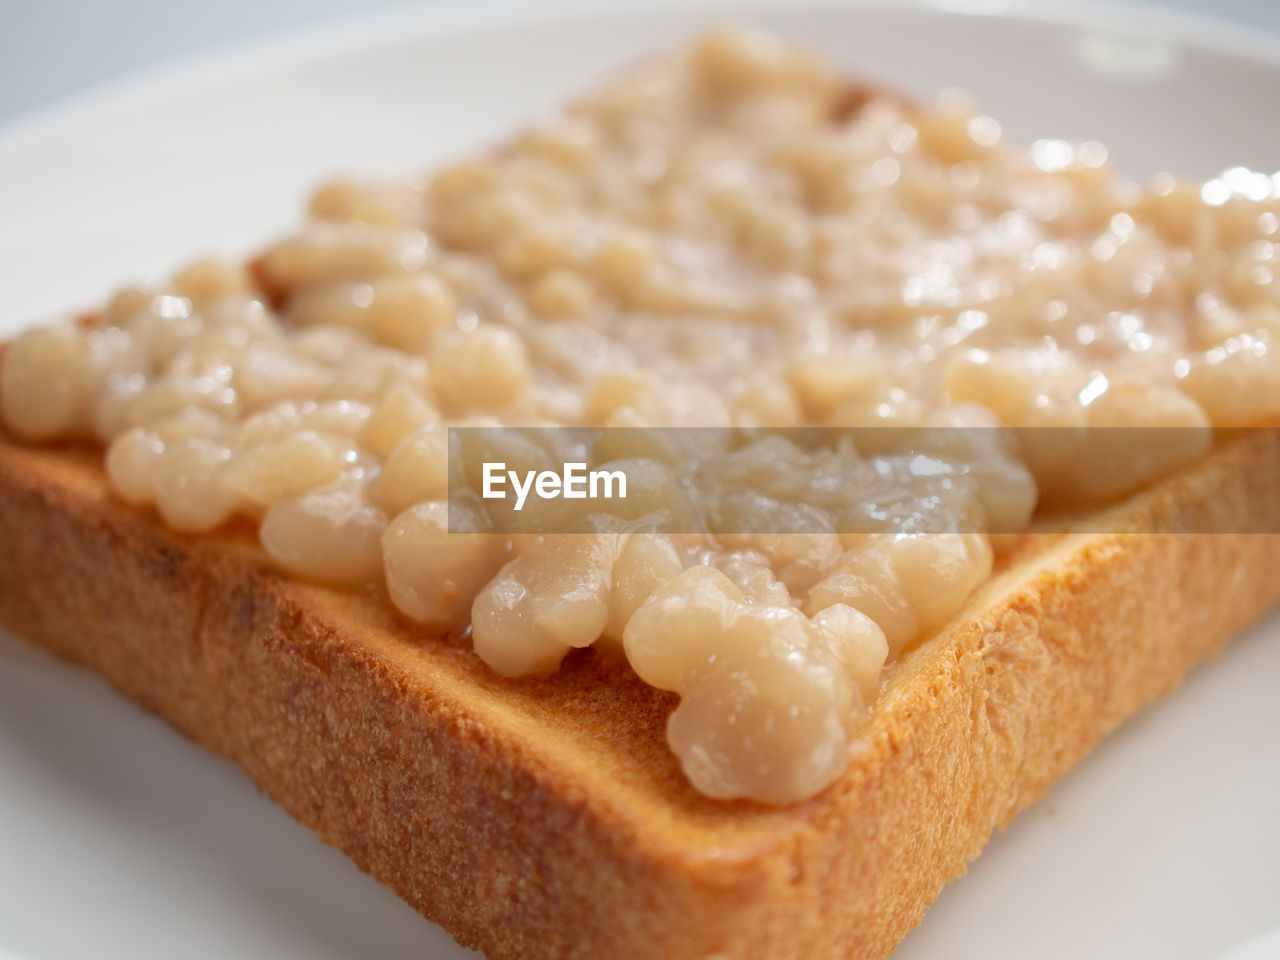 food and drink, food, close-up, still life, ready-to-eat, bread, selective focus, freshness, plate, indoors, no people, focus on foreground, healthy eating, serving size, wellbeing, meal, snack, breakfast, slice, toasted bread, temptation, crockery